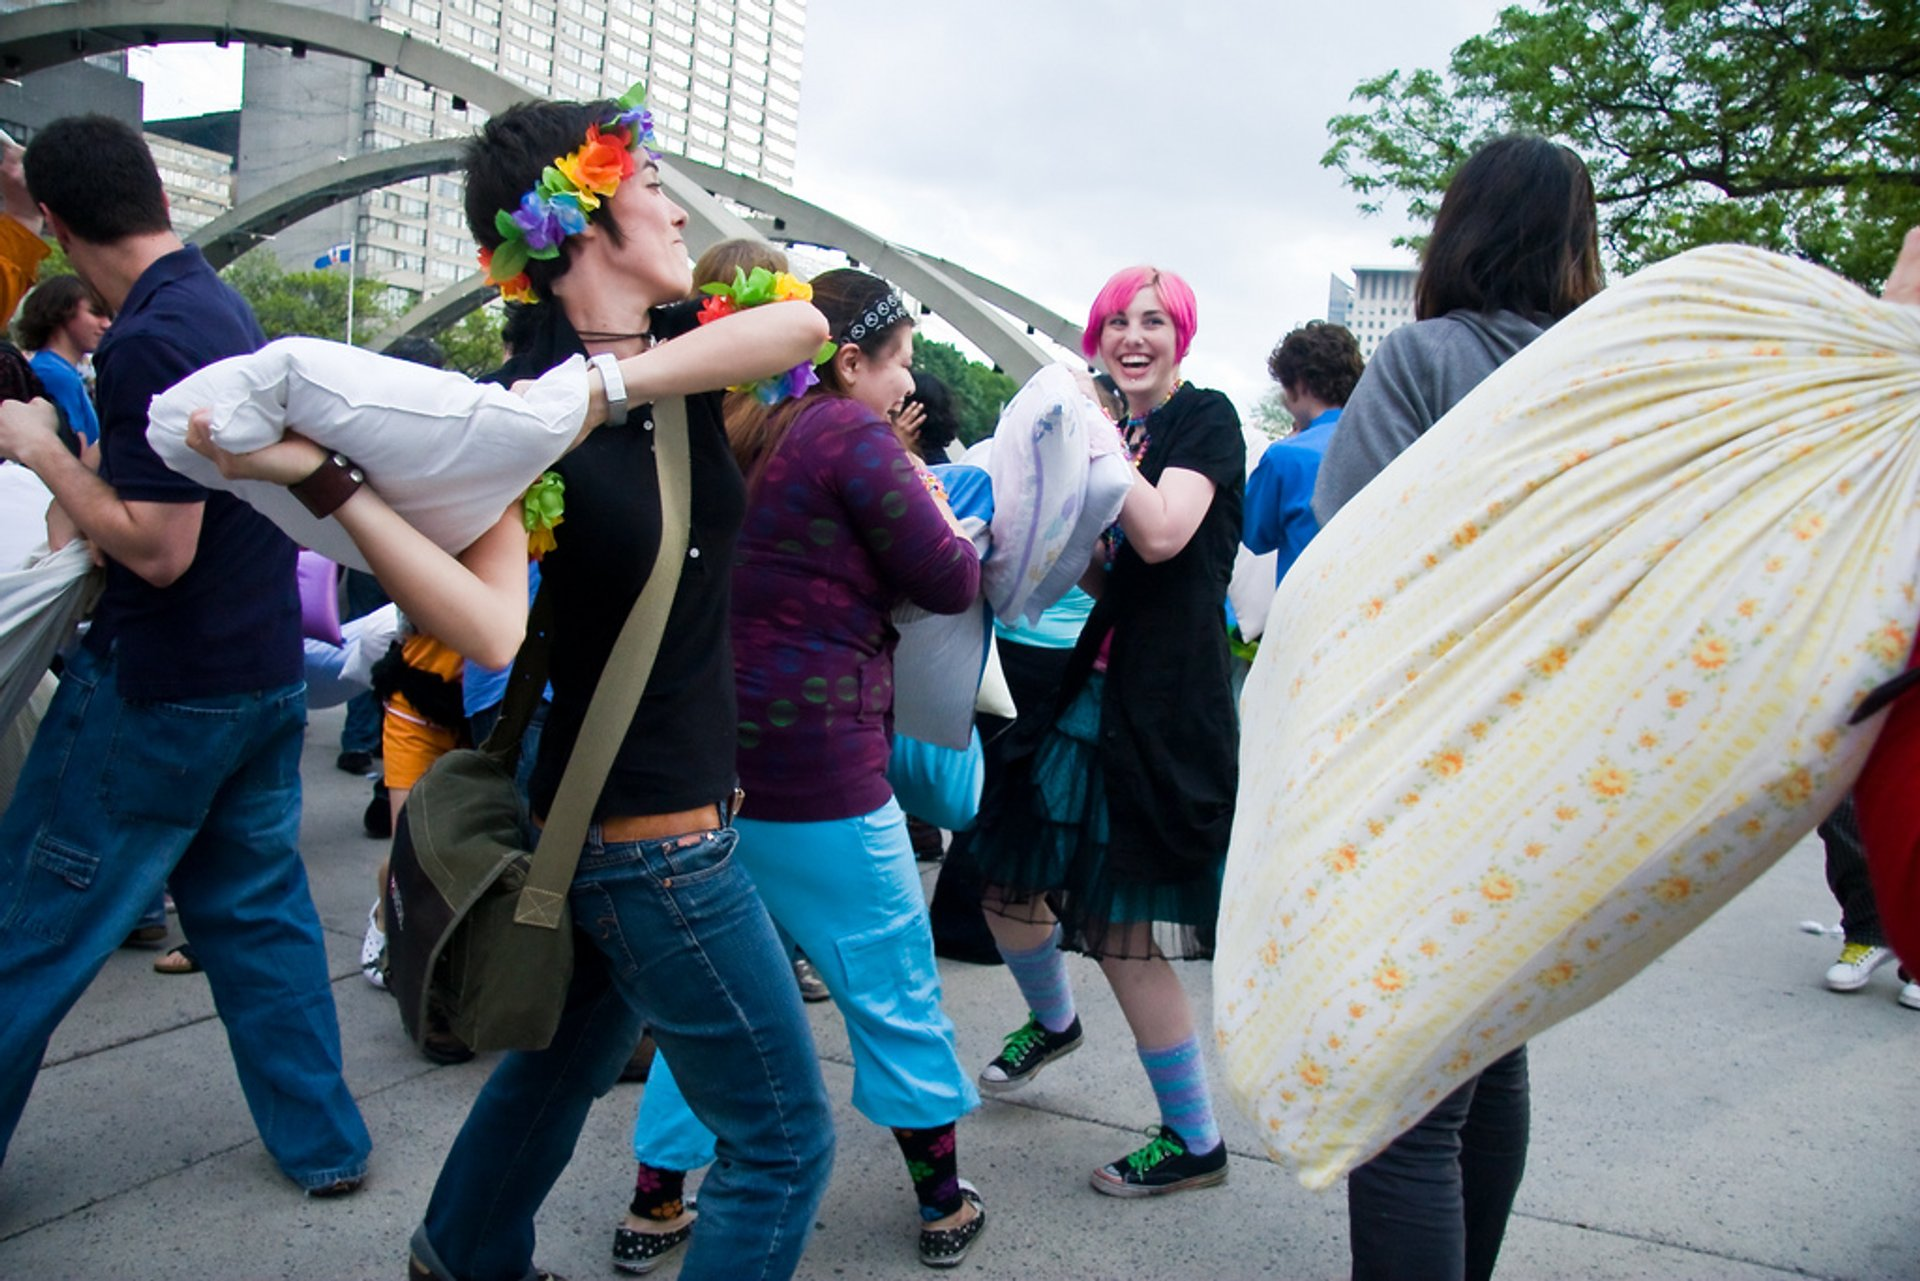 Best time to see Giant Pillow Fight in Toronto 2020